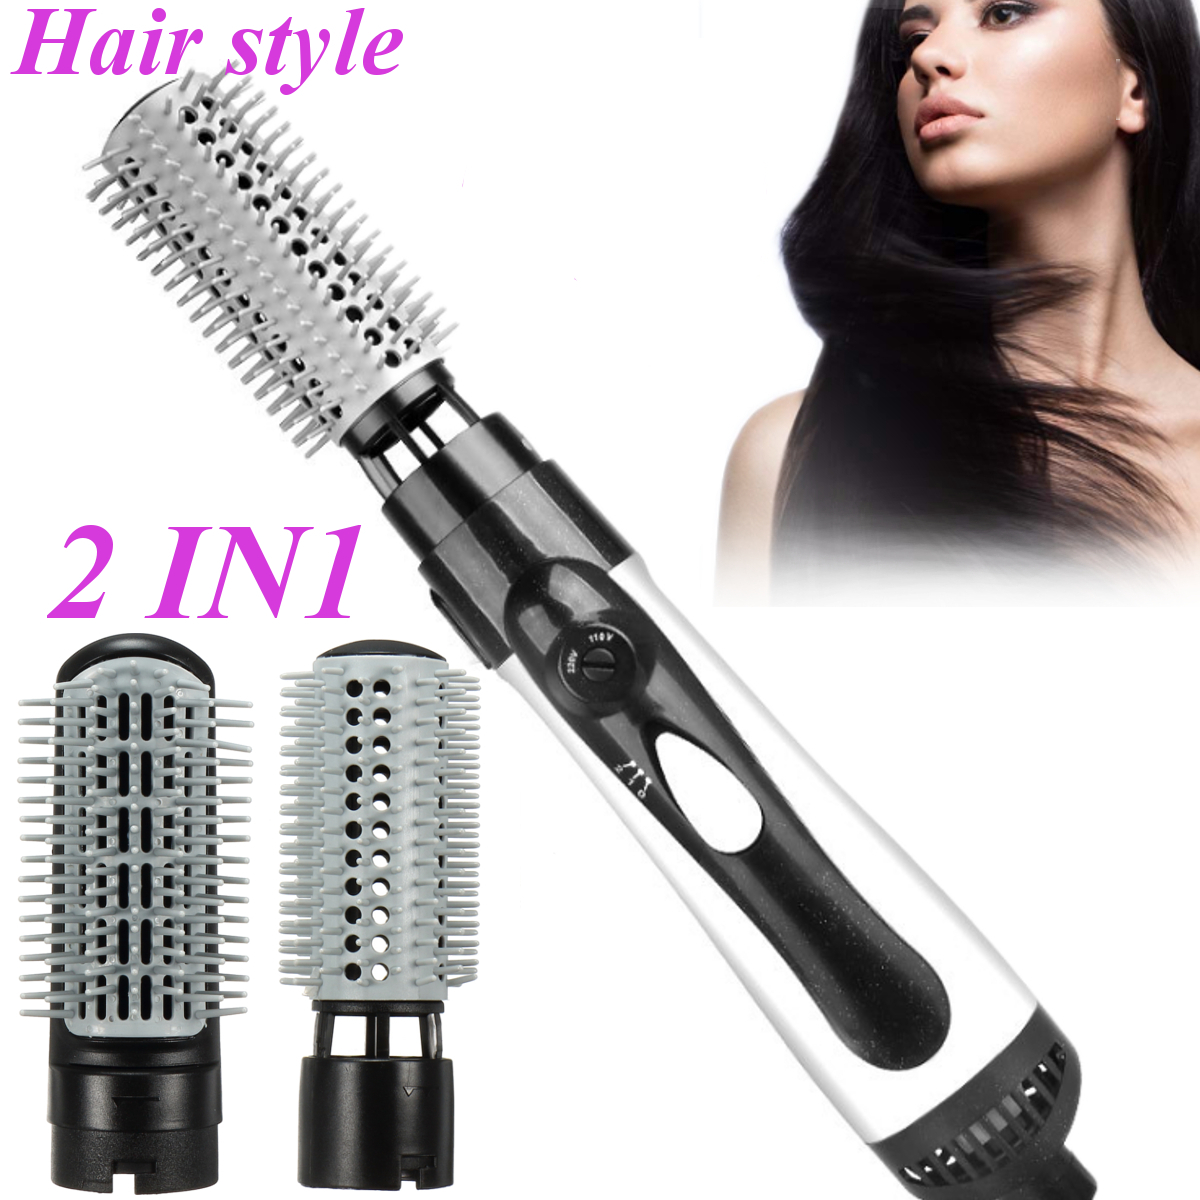 2 in 1 Hot Air Brush Hair Straightener Curler Hairdryer